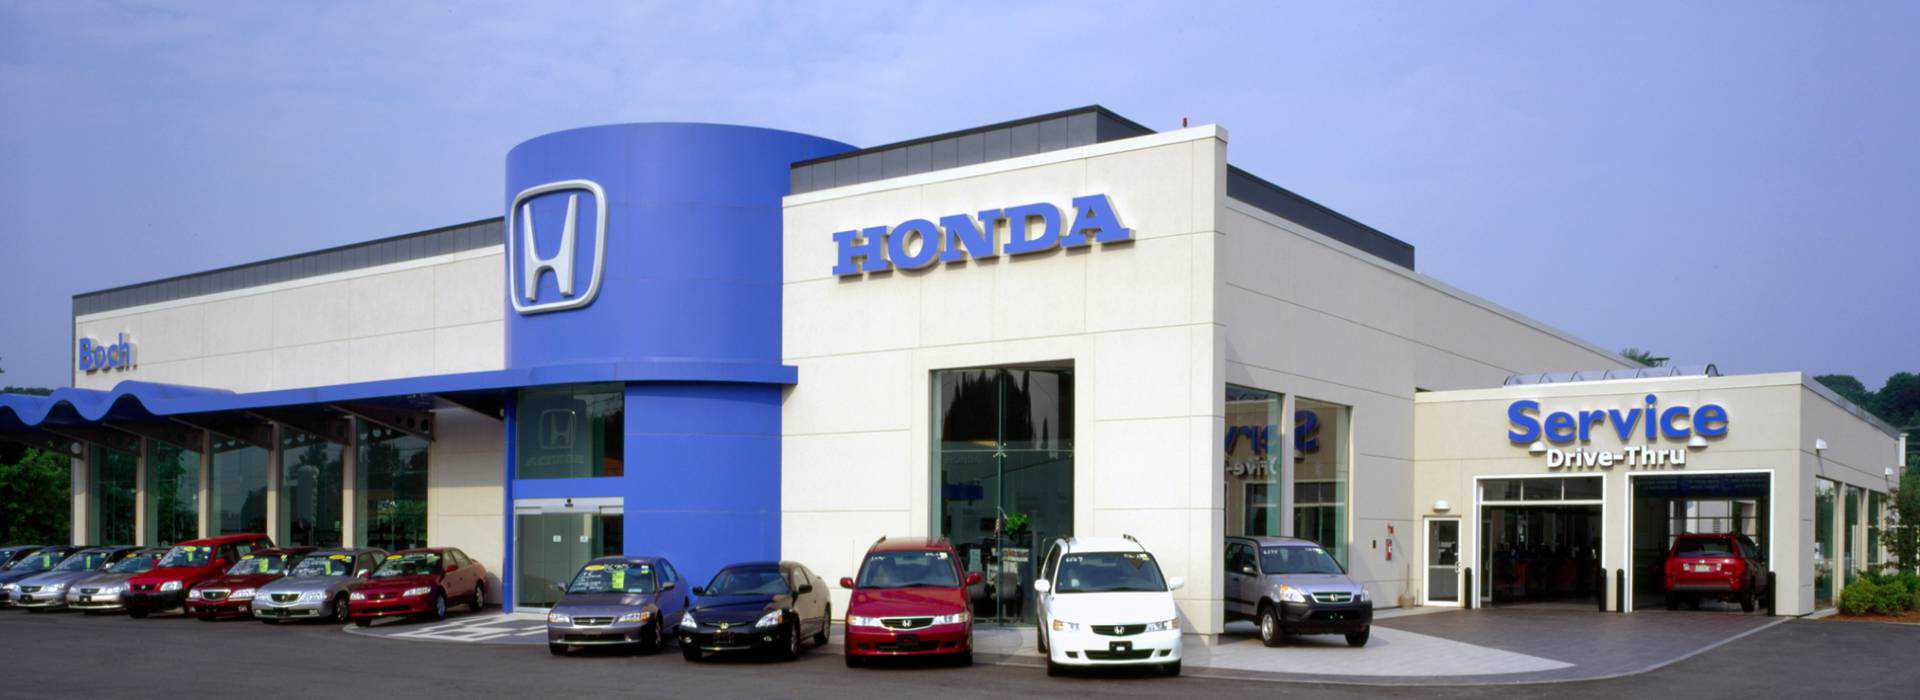 honda car australia customer service roadside assistance